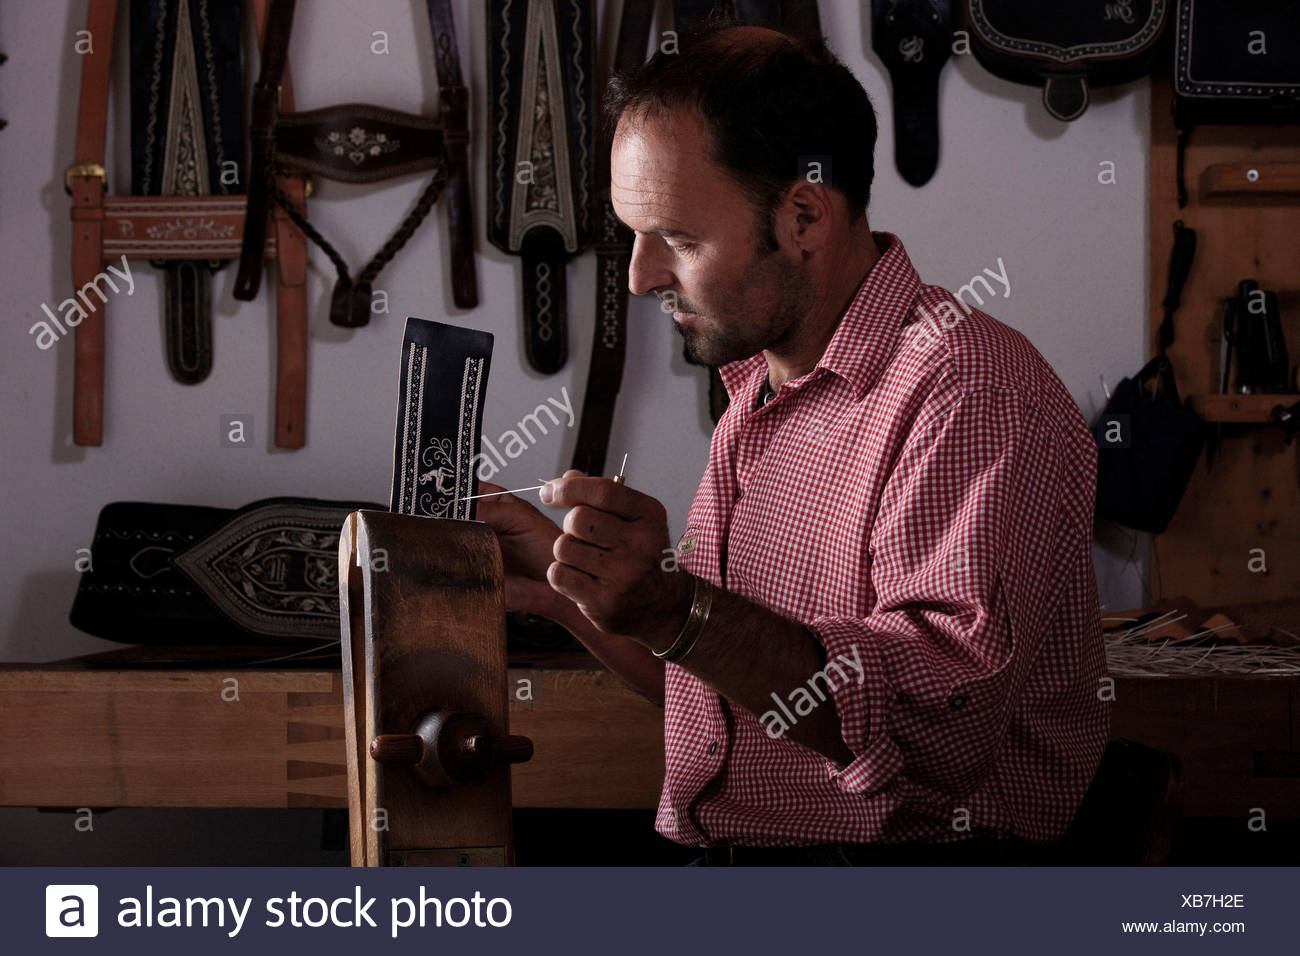 Male, 35-40 years, doing pinfeather embroidery, Reith im Alpbach, Tyrol, Austria - Stock Image